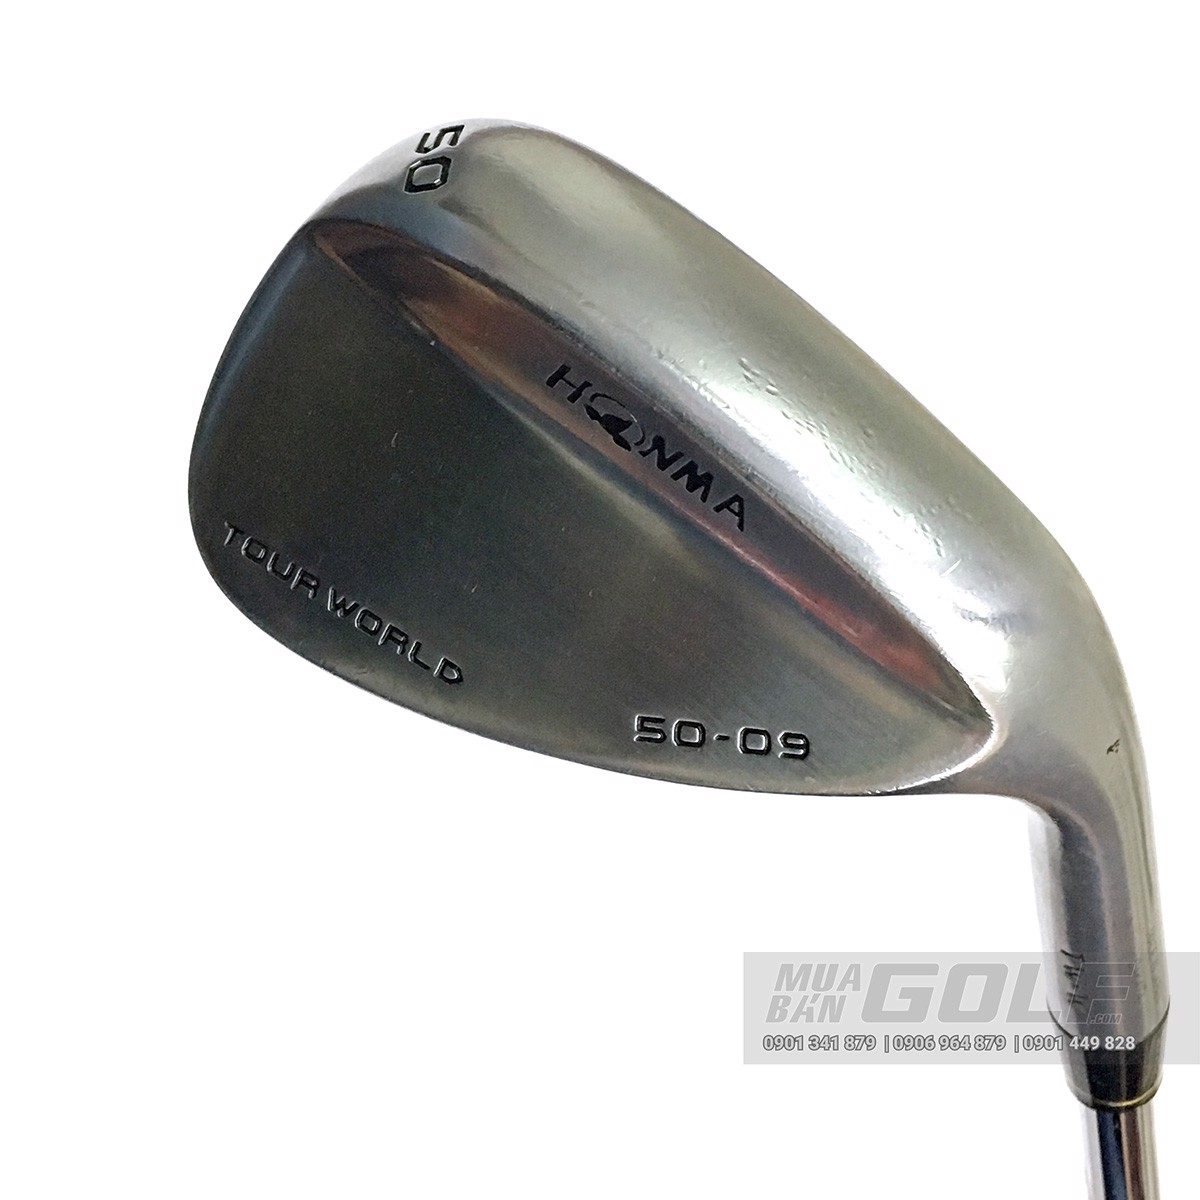 Gậy golf Wedge cũ HONMA TOUR WORLD LOFT 50 09 SCW HM1